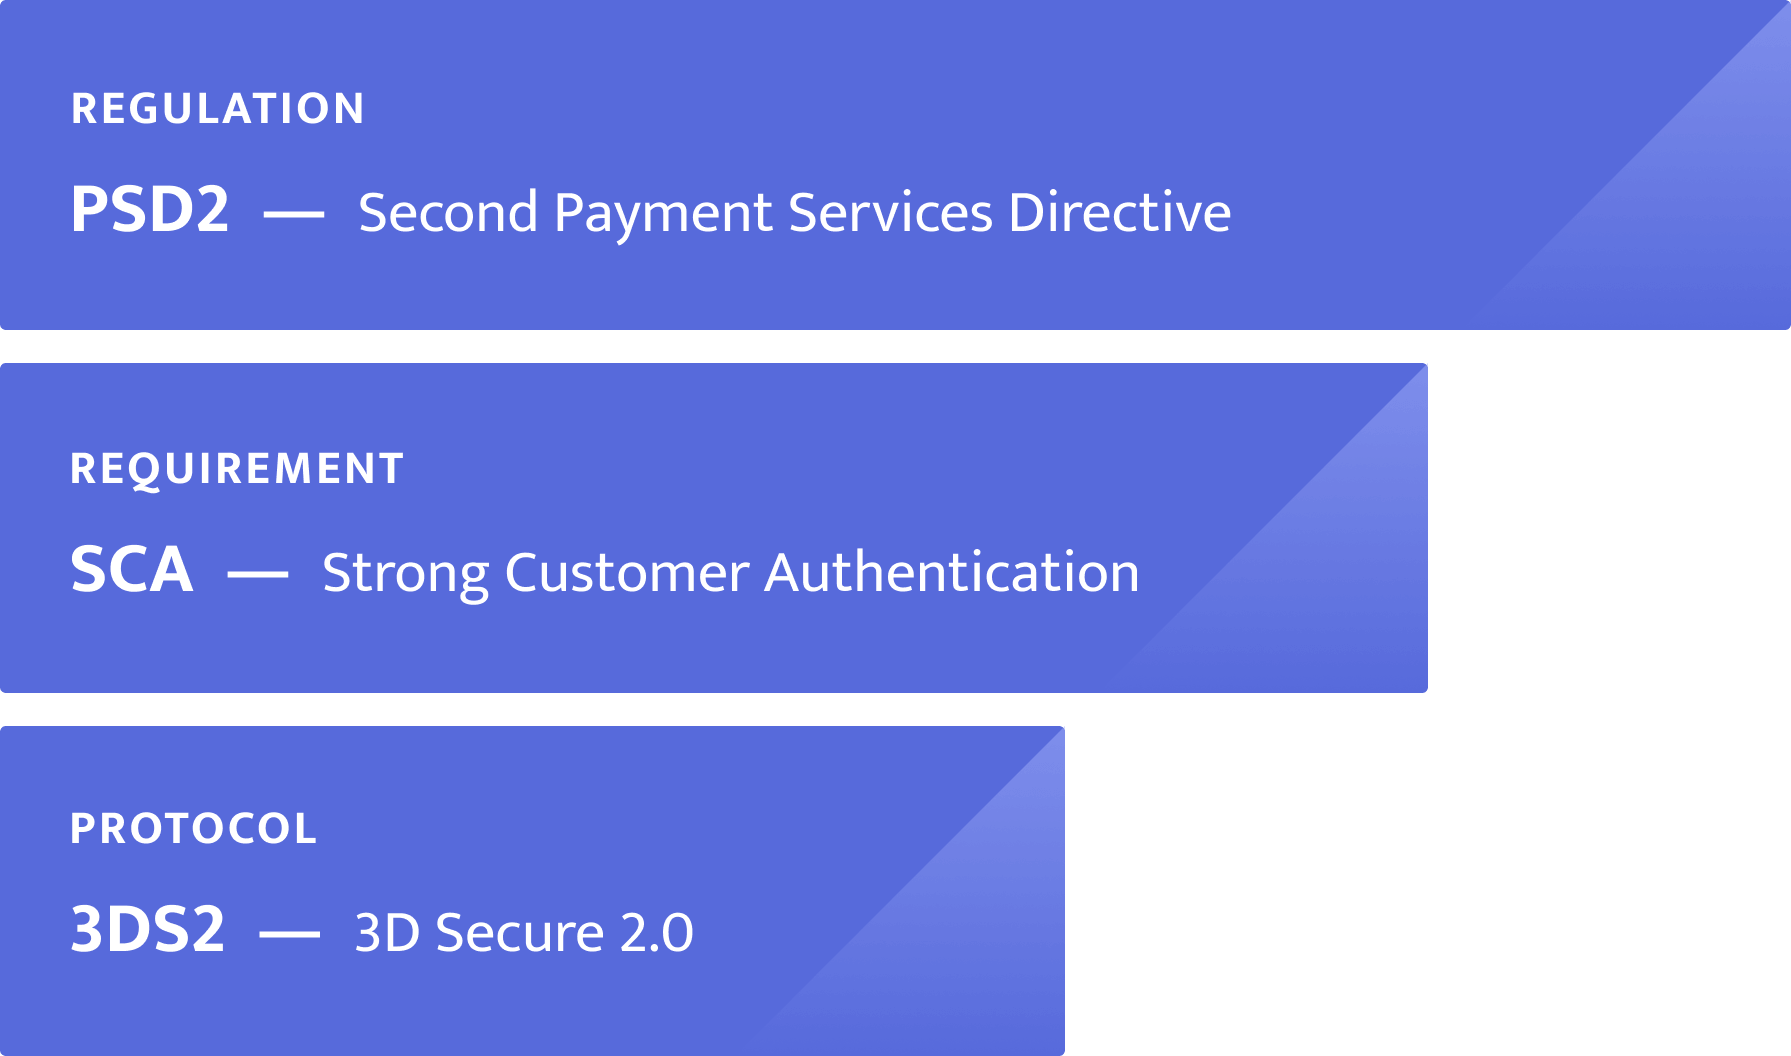 PSD2, SCA, and 3DS2 Relationship